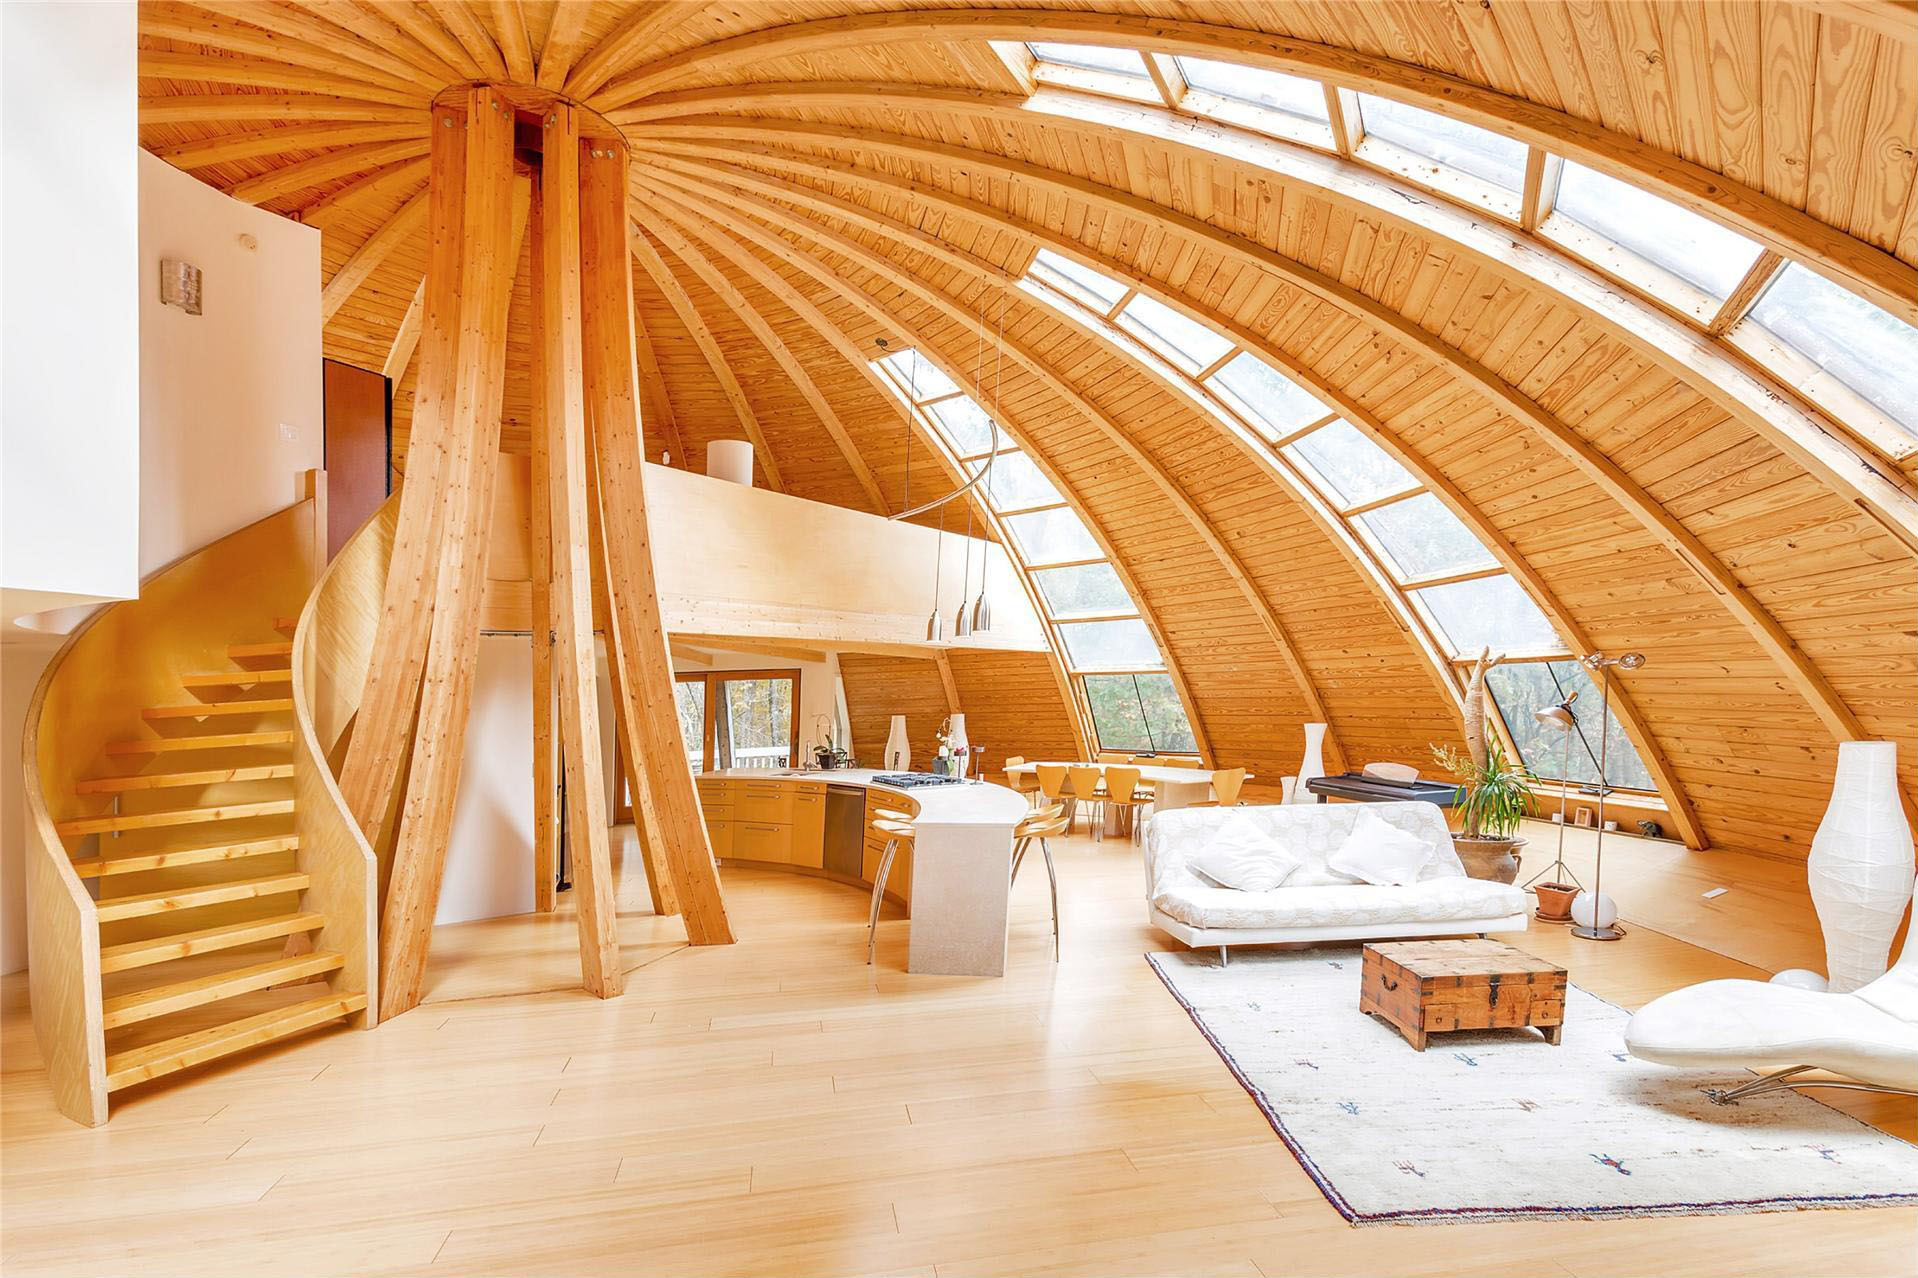 Flying saucer shaped house takes design to new heights Interior home